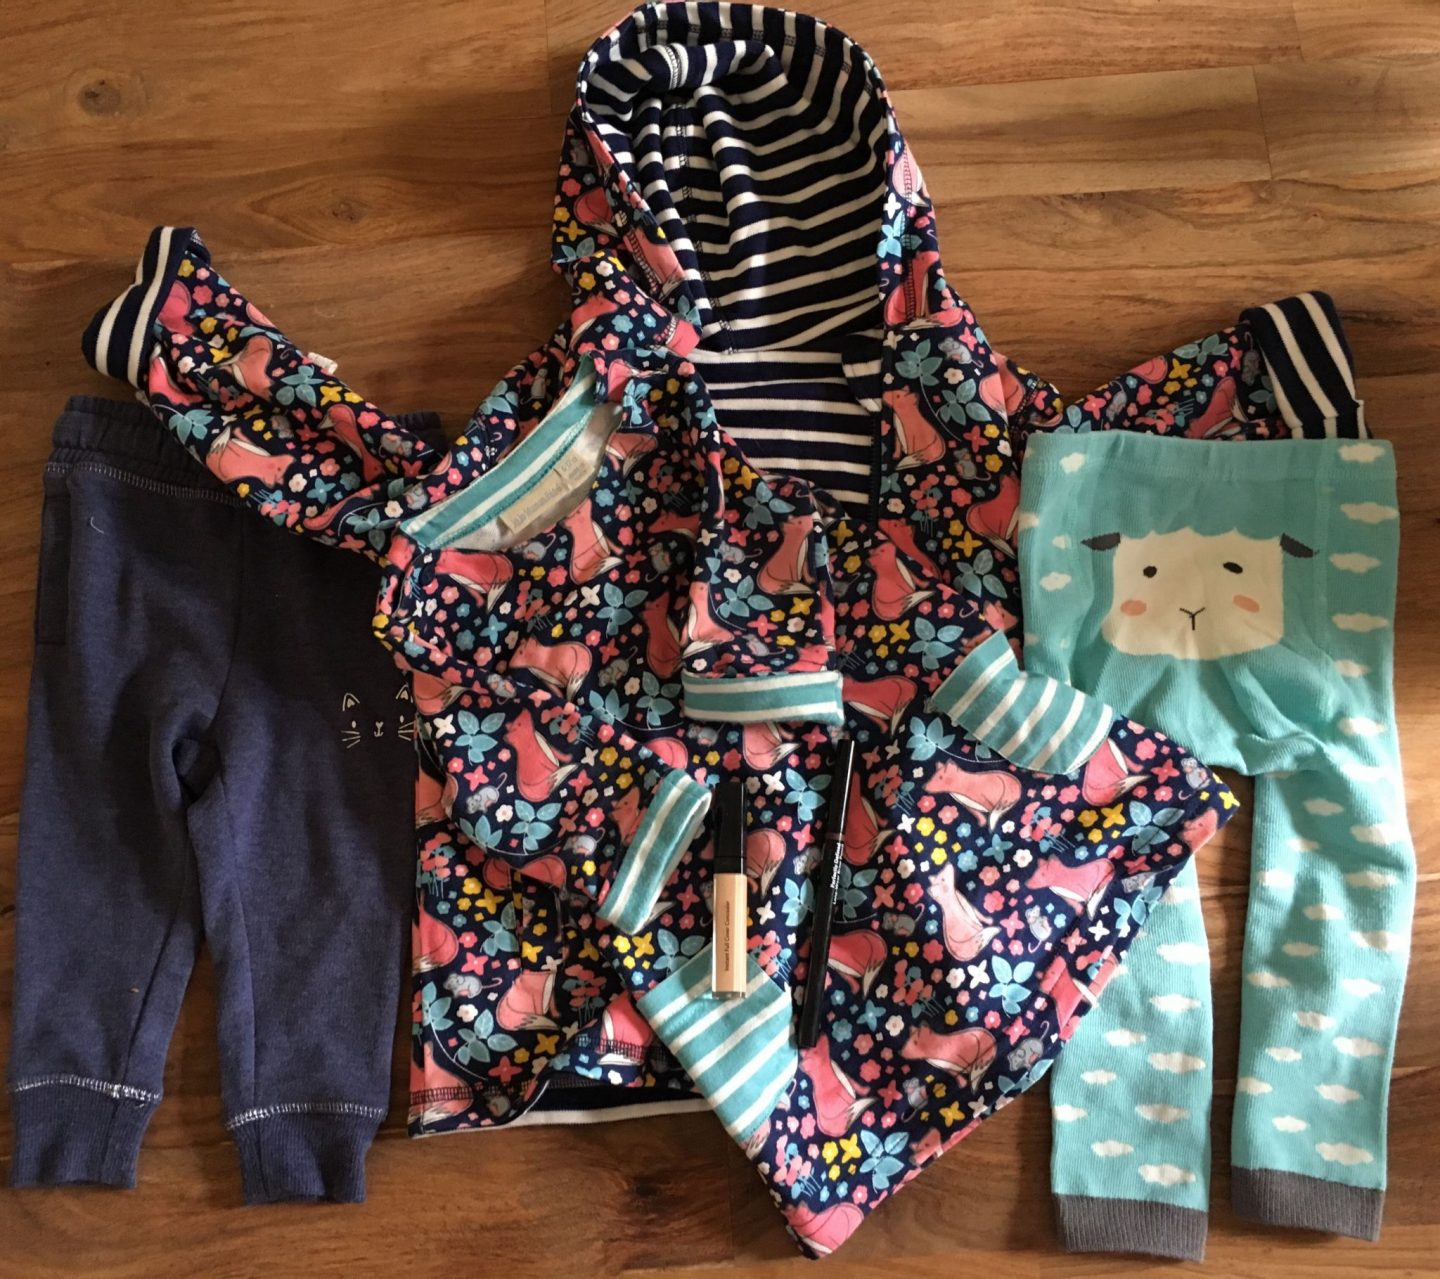 Baby clothes from JoJo Maman Bebe, Mothercare, Oliviers Boutique, and makeup from Bobbi Brown